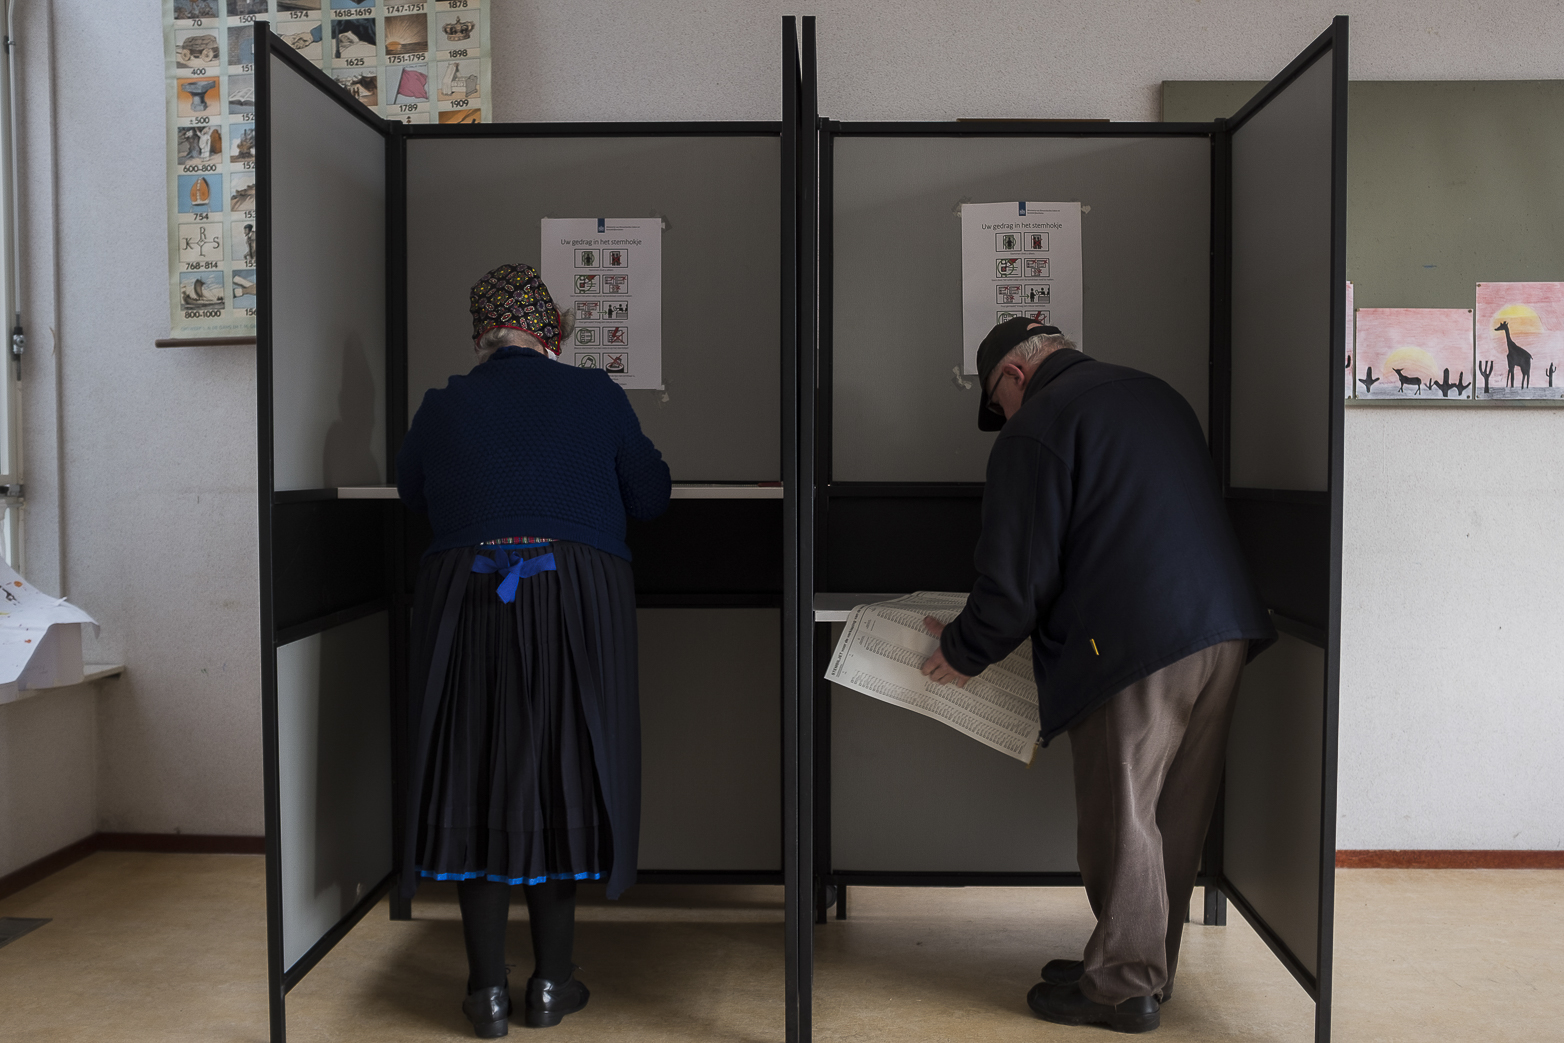 An elderly couple cast their ballots for the Dutch general elections at a polling station set up in a school in Staphorst, Netherlands, Wednesday, March 15, 2017.